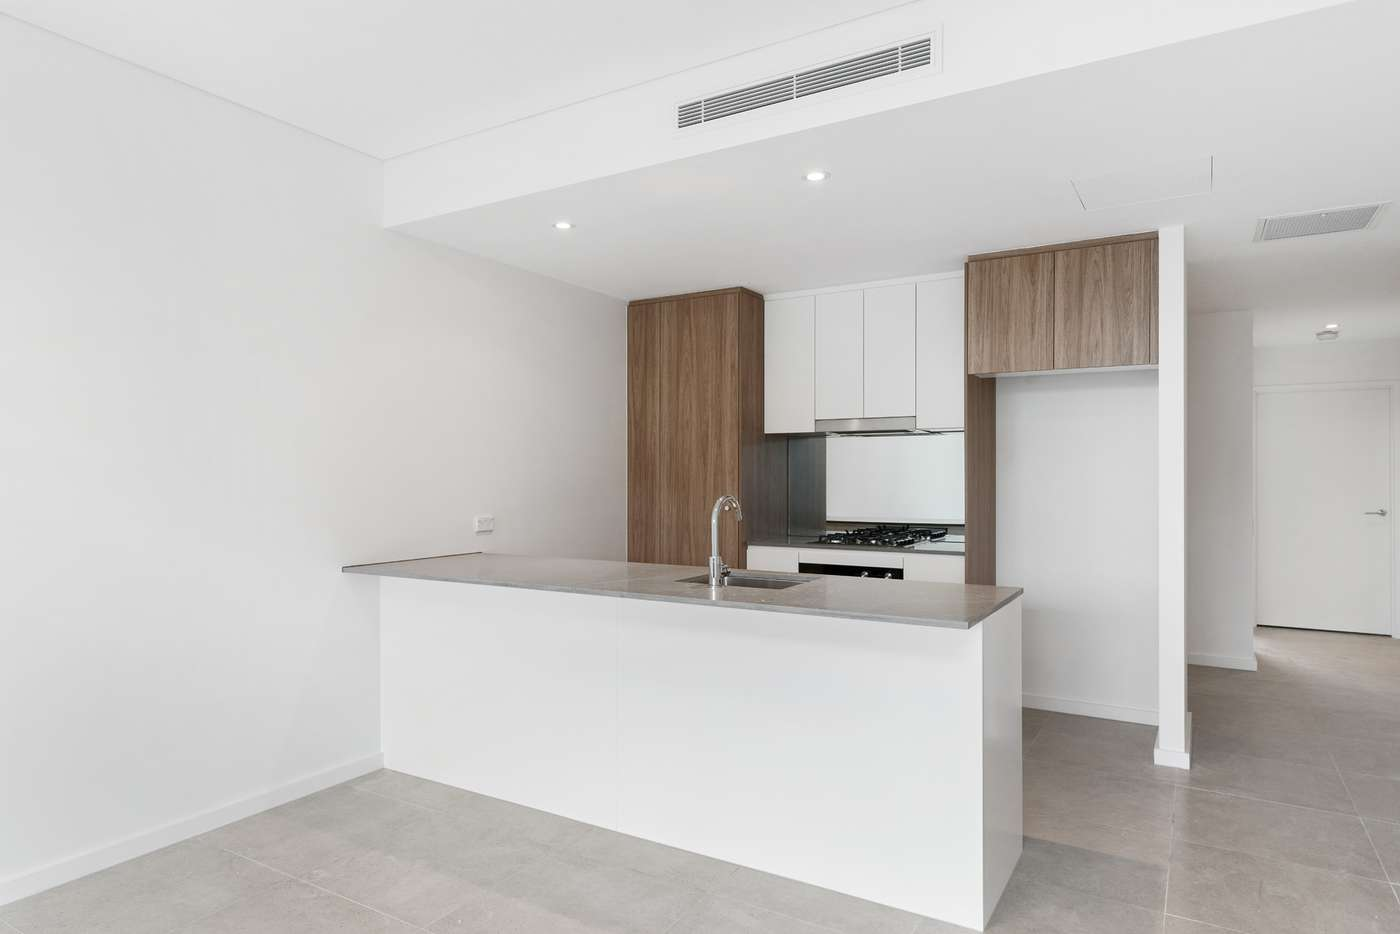 Main view of Homely apartment listing, 112/10-20 McEvoy Street, Waterloo NSW 2017